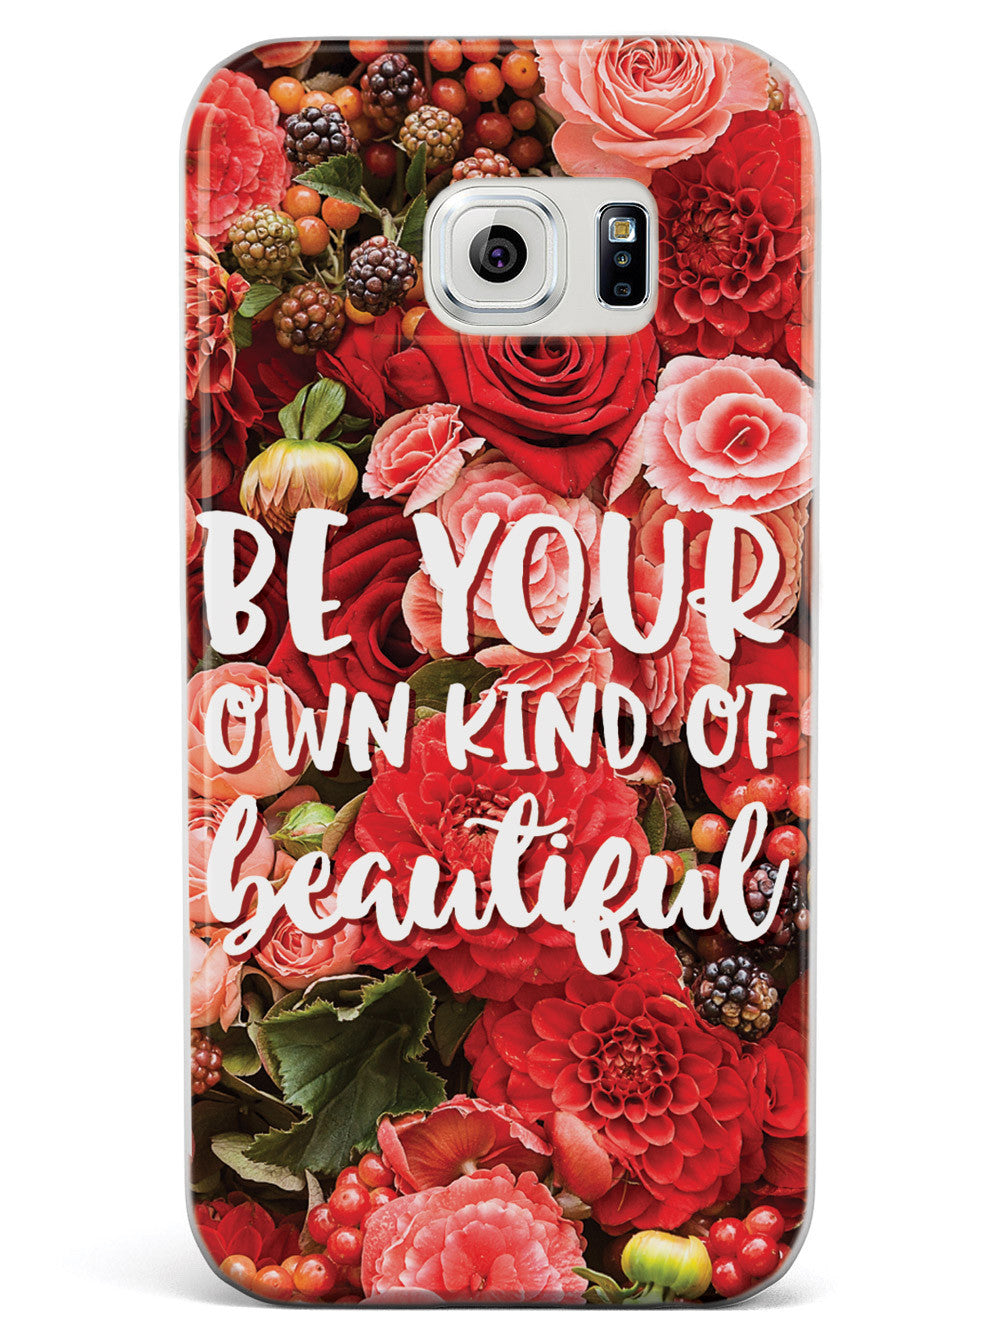 Be Your Own Kind of Beautiful - Red Flower Background Case